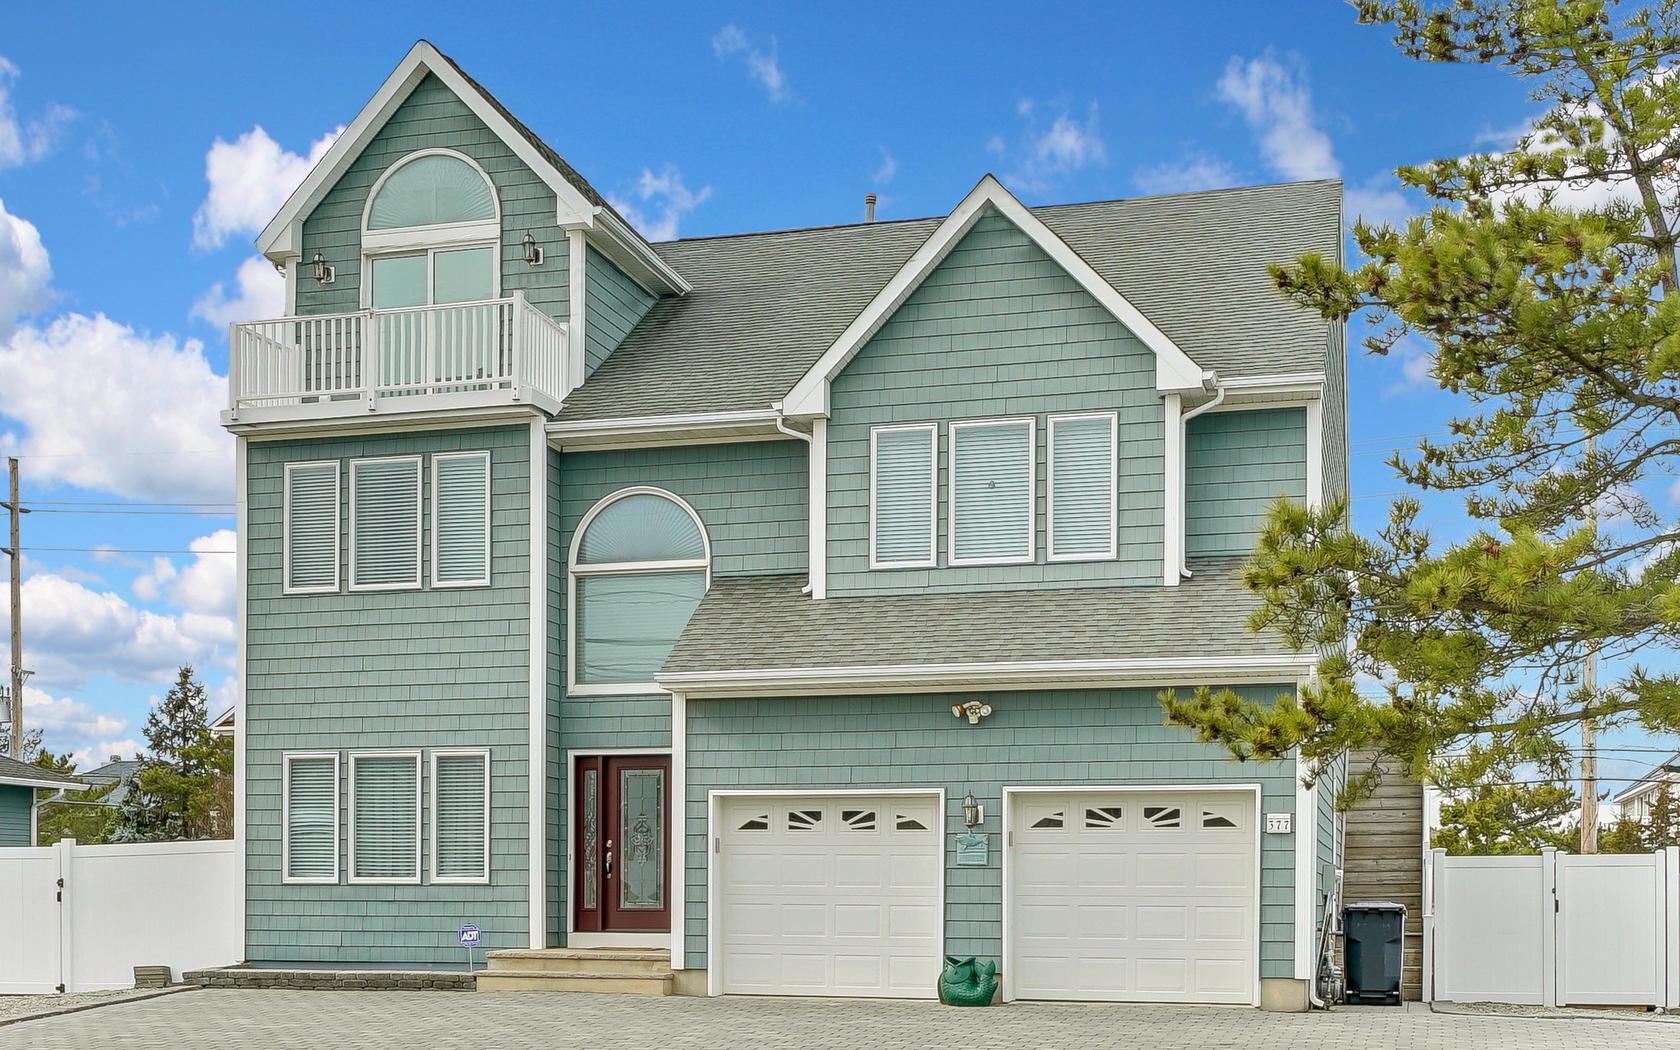 Single Family Home for Sale at Osprey Dunes Beach Association! 377 Route 35 Brick, 08738 United States